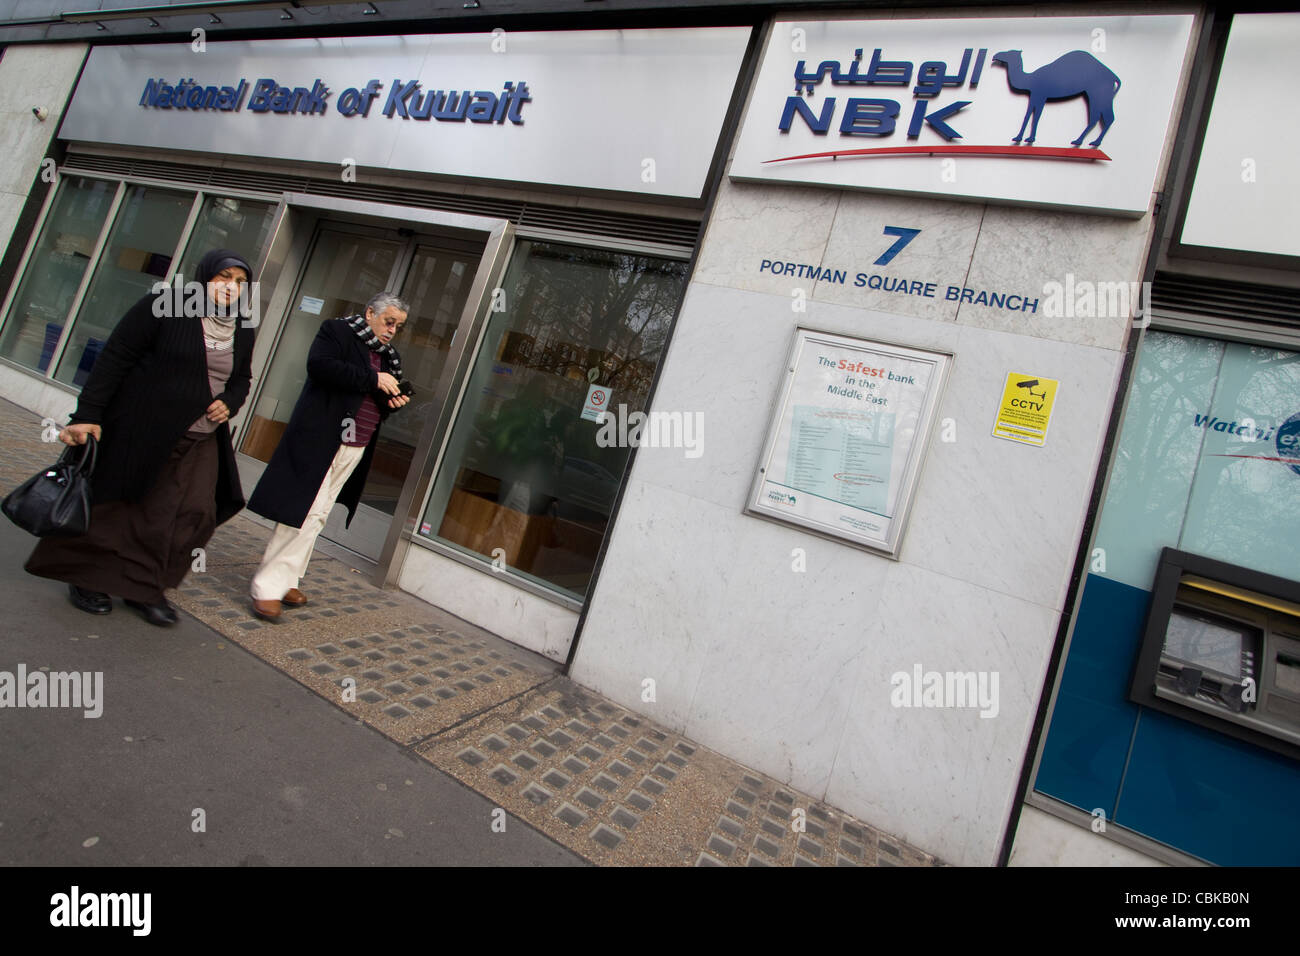 nbk national bank of kuwait, London UK - Stock Image